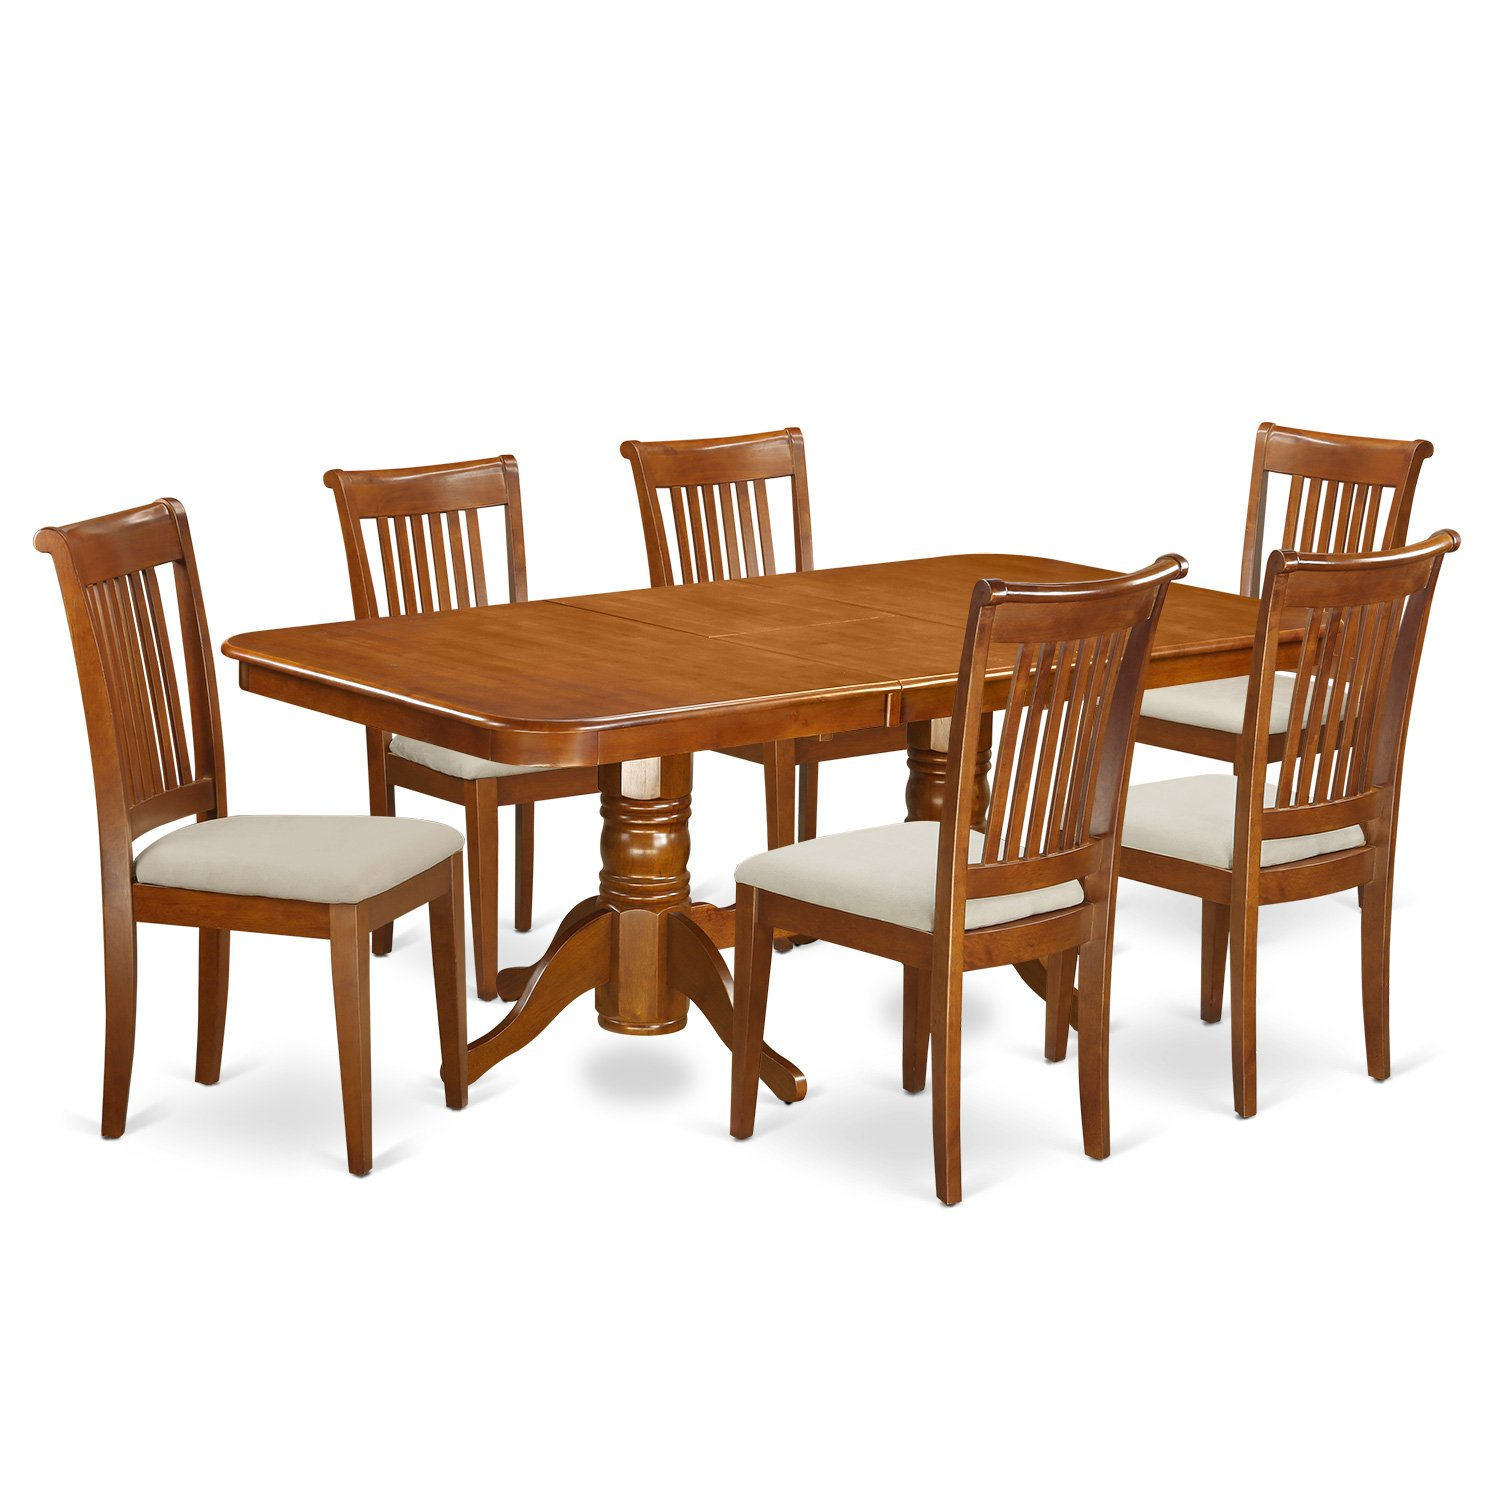 NAPO7-SBR-C 7 PC Dining room set Table with Leaf and 6 Chairs for Dining